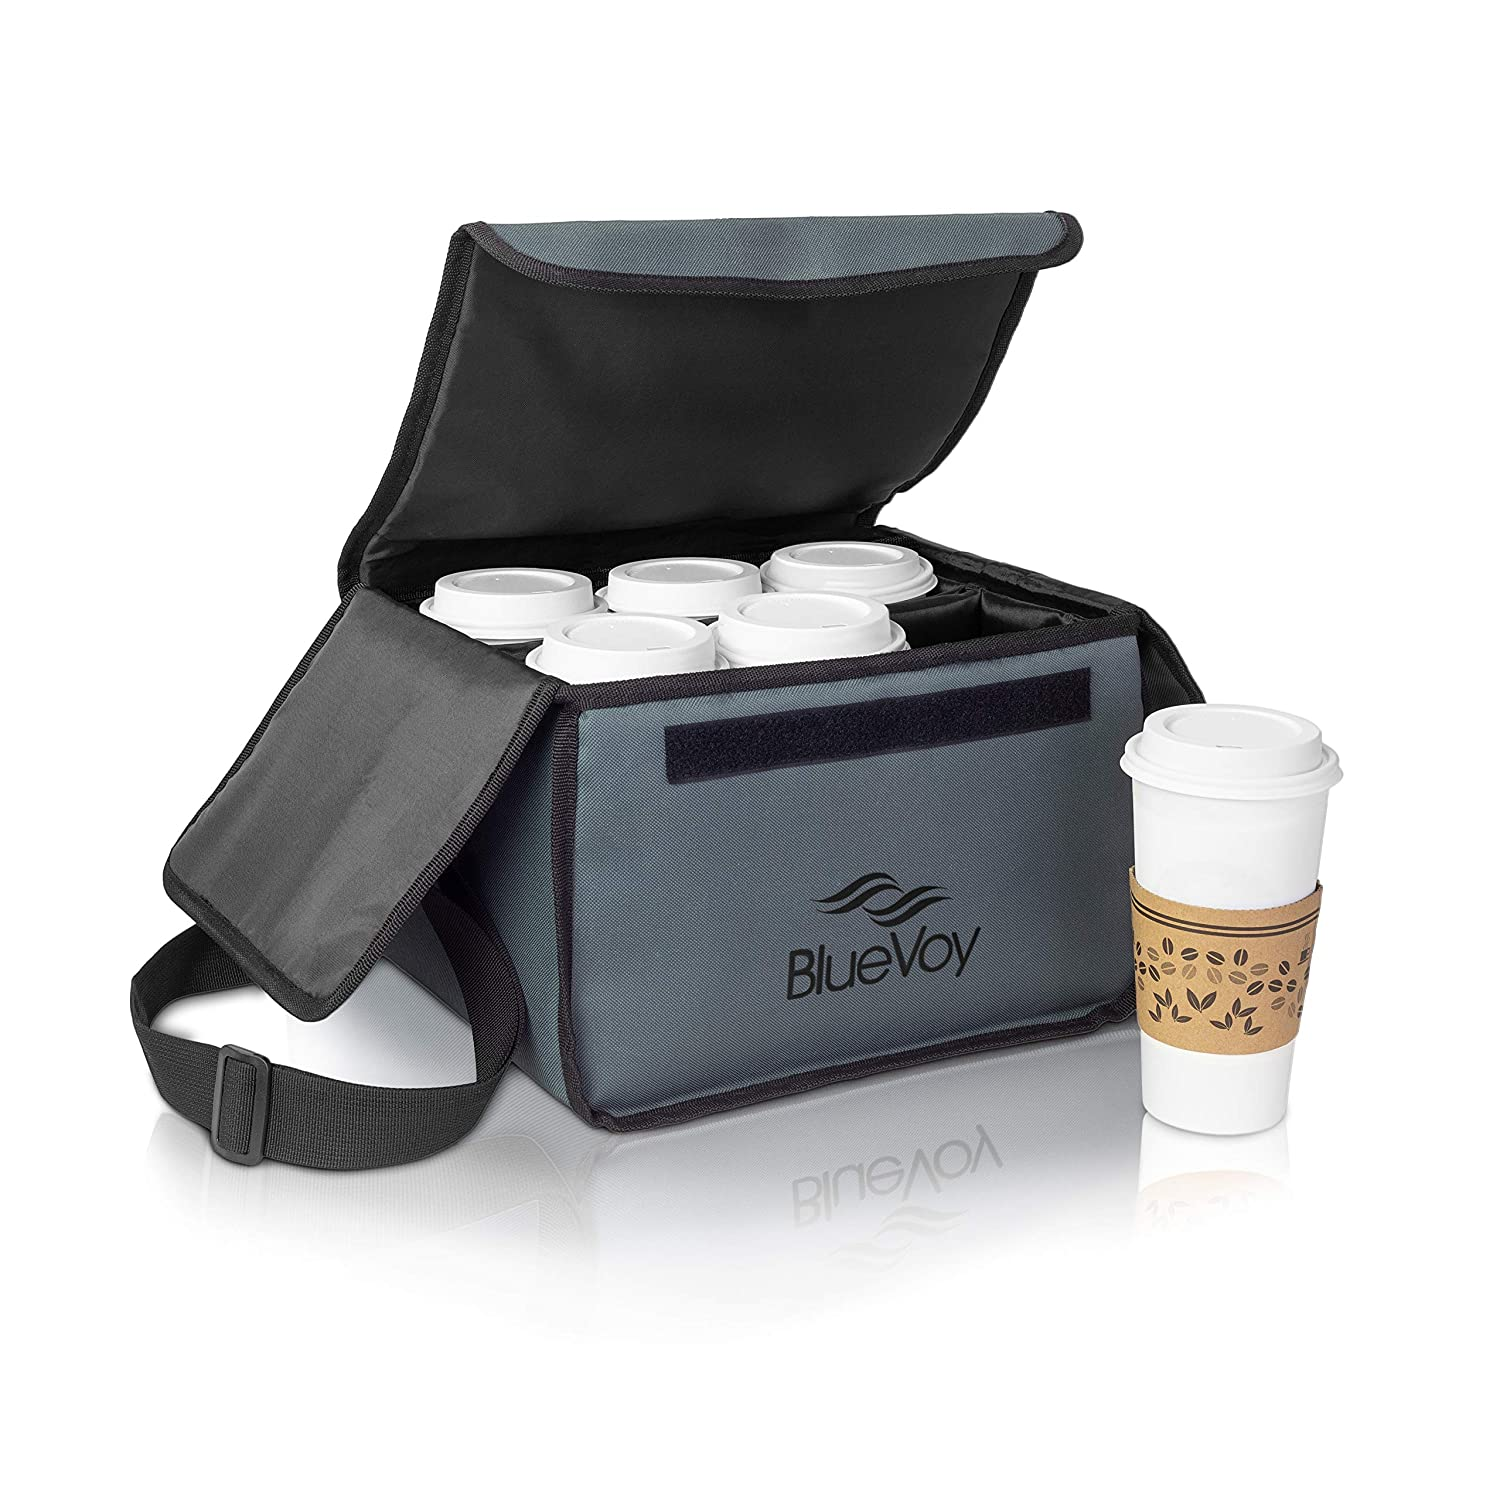 Reusable Drink Carrier for Delivery and Food Delivery Bag   Drink Holder Works as a Travel Coffee Carrier to Go, Drink Caddy Bag, Cup Carrier Tote and Drink Carrier with Handle and Removable Dividers